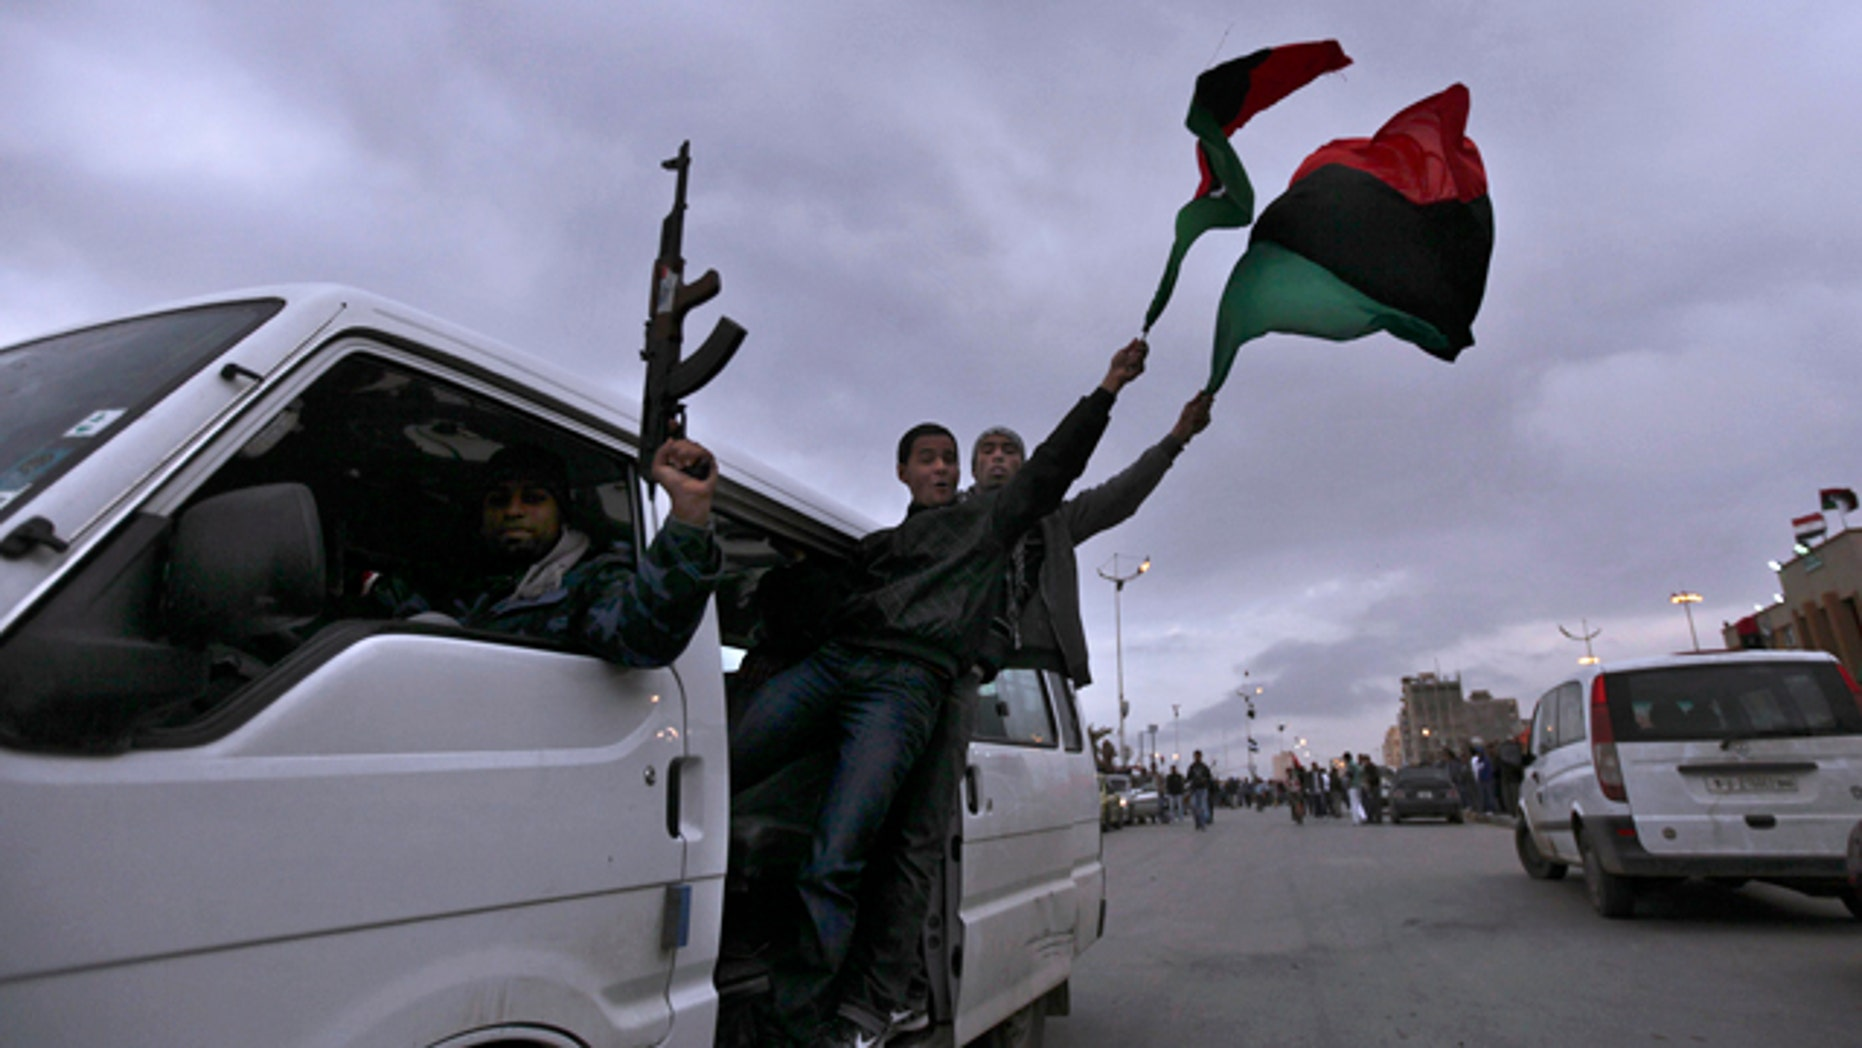 March 30: A Libyan rebel fires in air as others wave Libyan pre-Qaddafi flags as they ride a vehicle at twilight  in Benghazi, Libya.